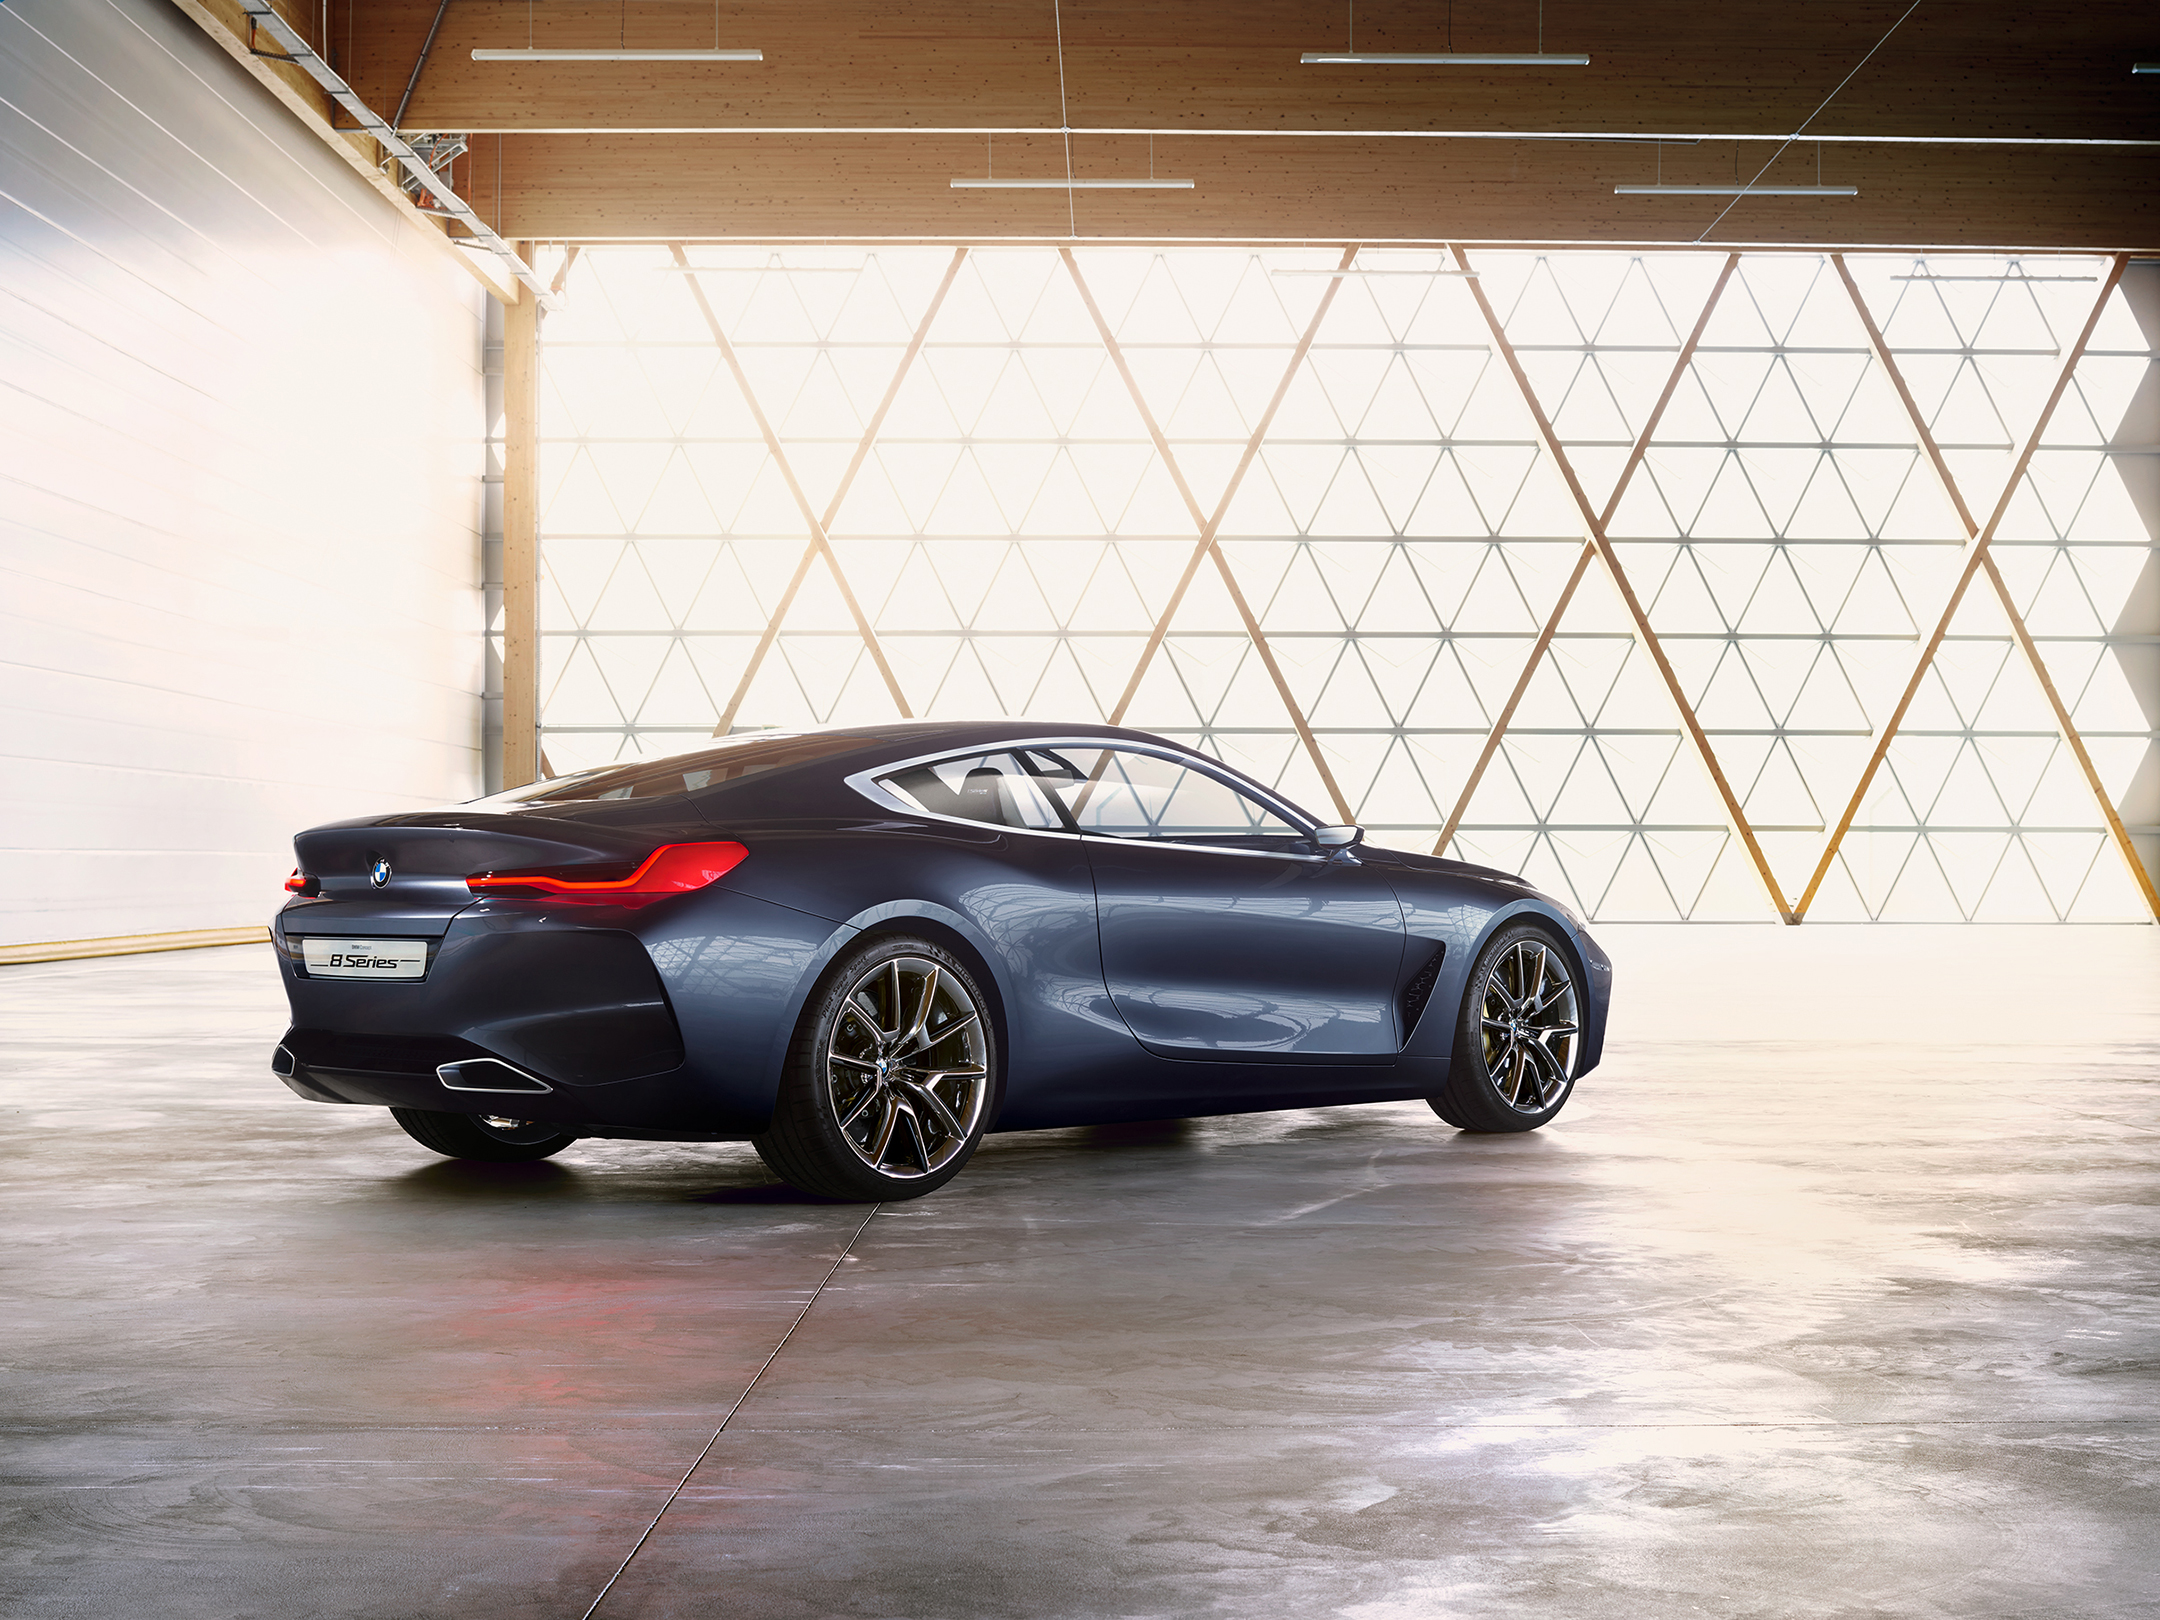 BMW concept 8 series - 2017 - rear side-face / profil arrière